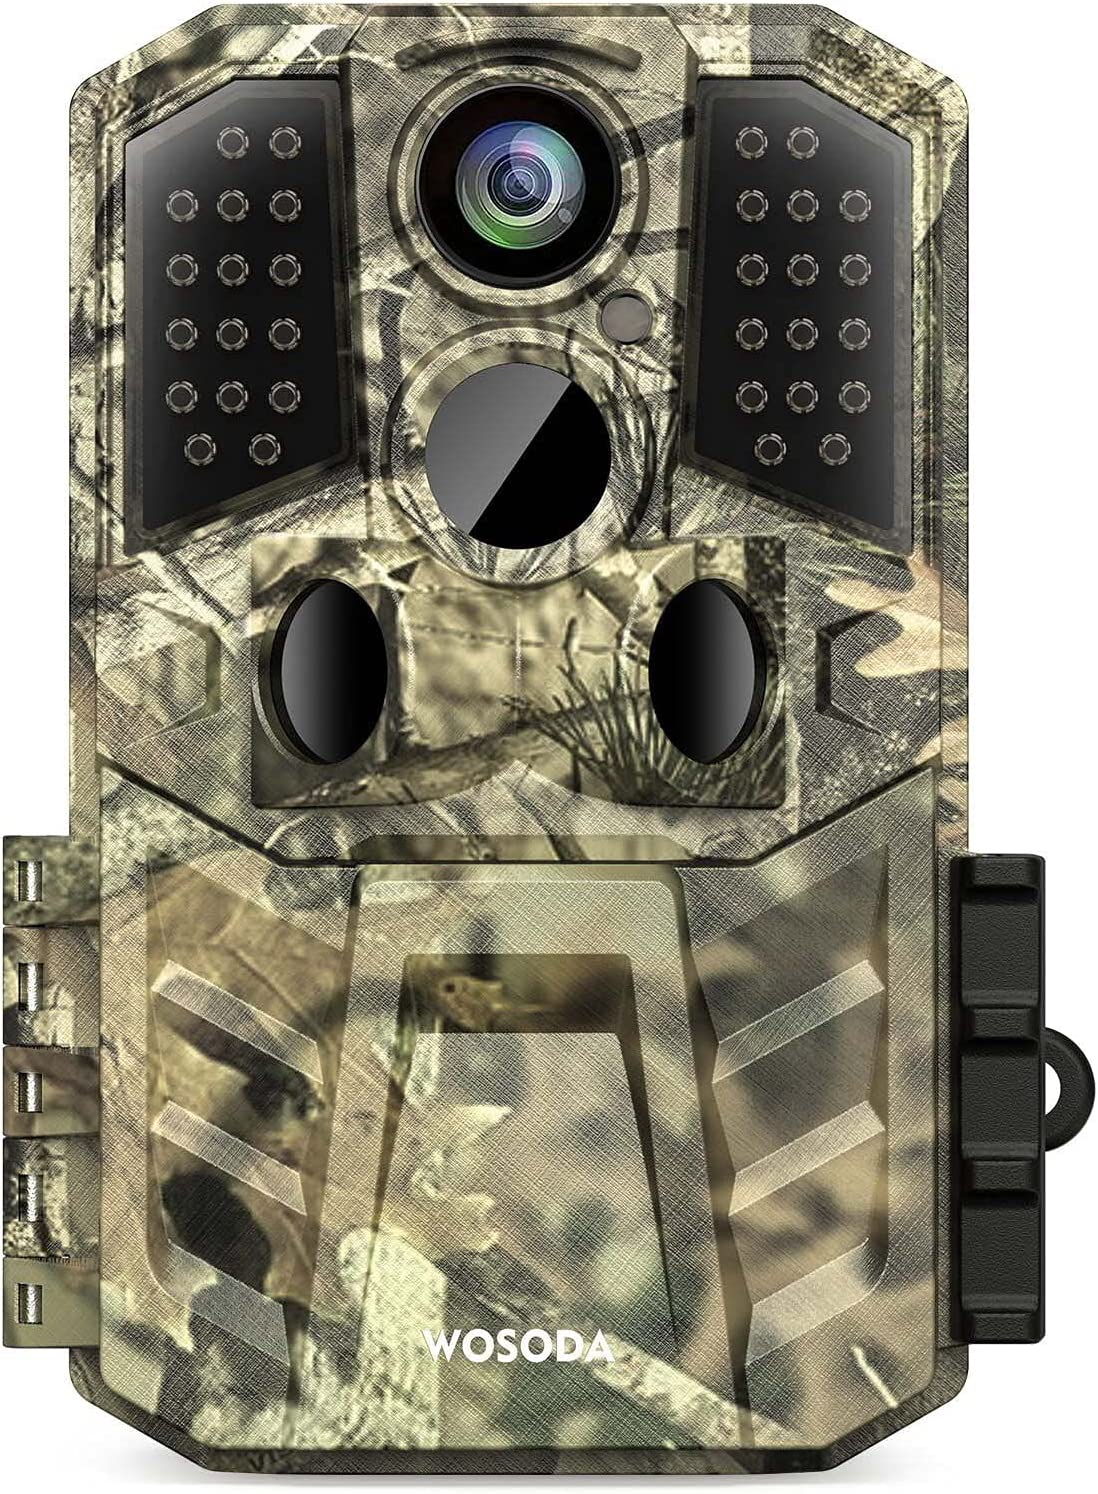 """Trail Camera 24MP 1920P HD, Hunting Game Camera 0.2s Trigger Time 3 Infrared Sensors ,Deer Camera with 120° 80ft Motion Activated Waterproof for Outdoor Wildlife Monitoring Home Security, 2"""" LCD"""